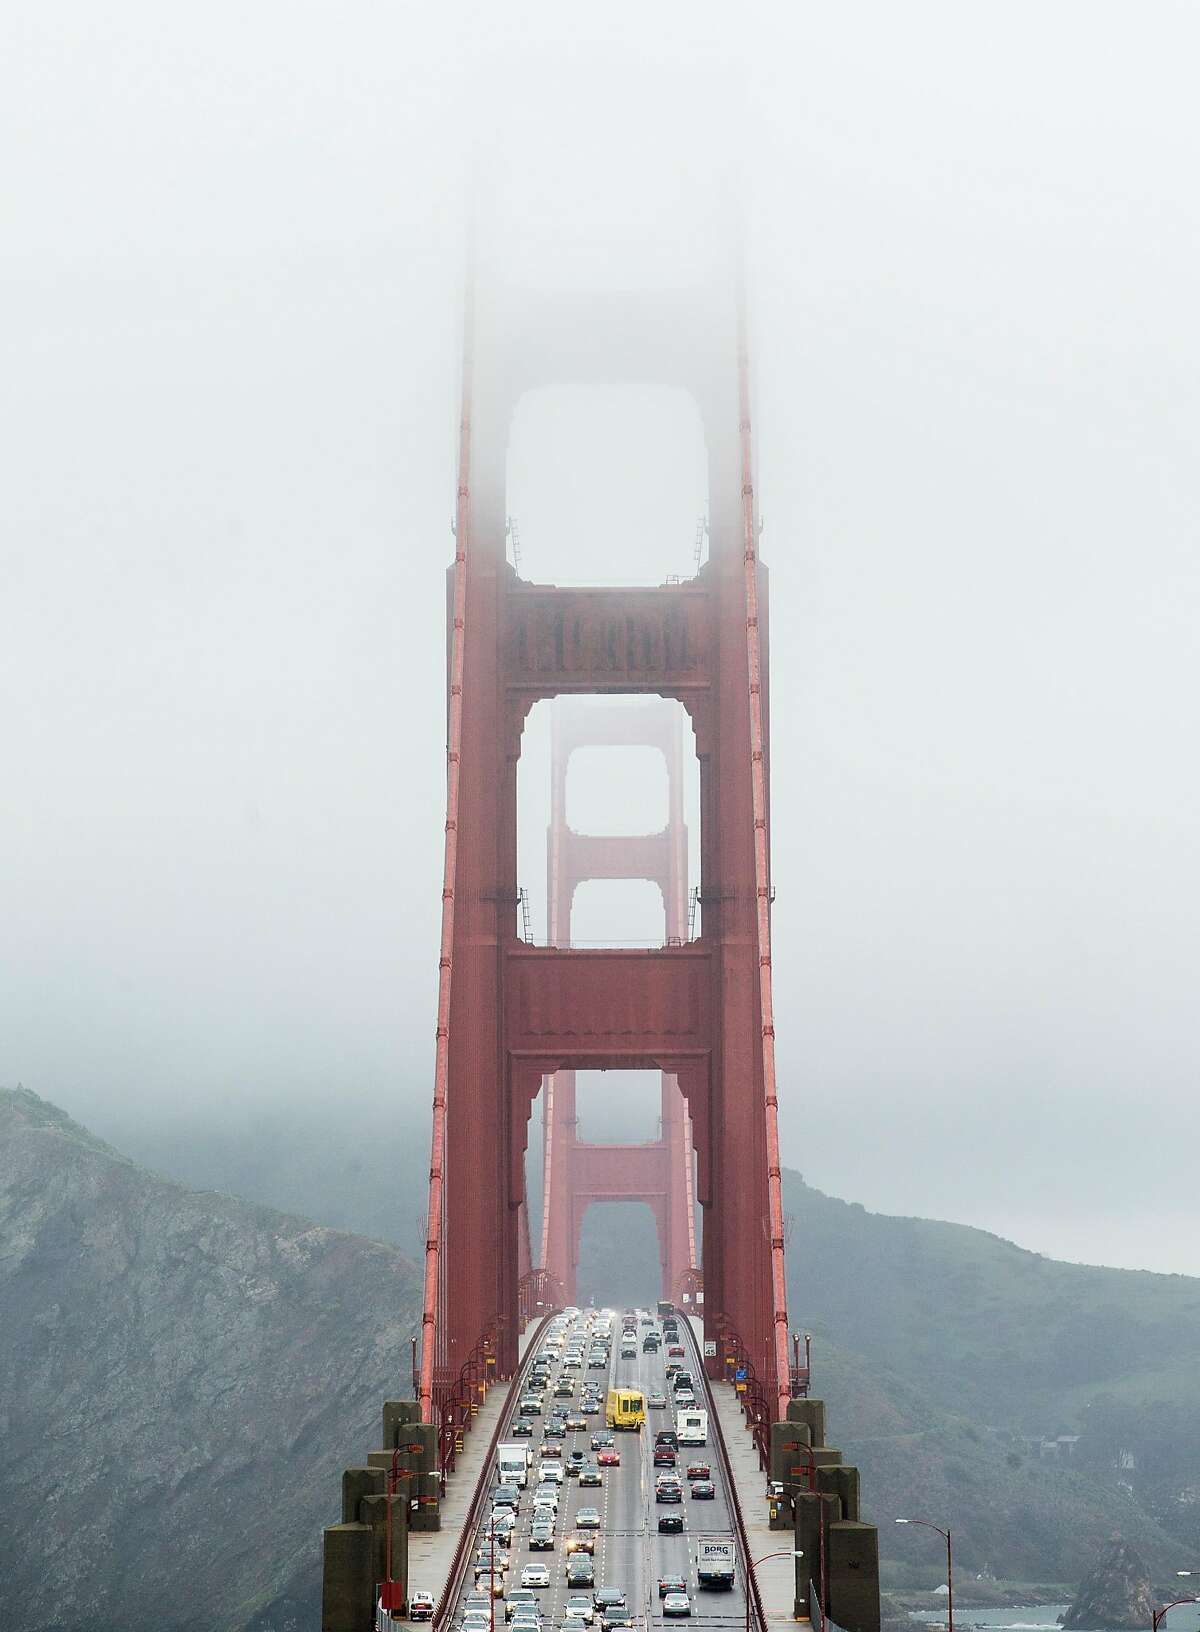 Cars drive over the Golden Gate Bridge during a rainy morning commute Thursday, March 22, 2018 in San Francisco, Calif.